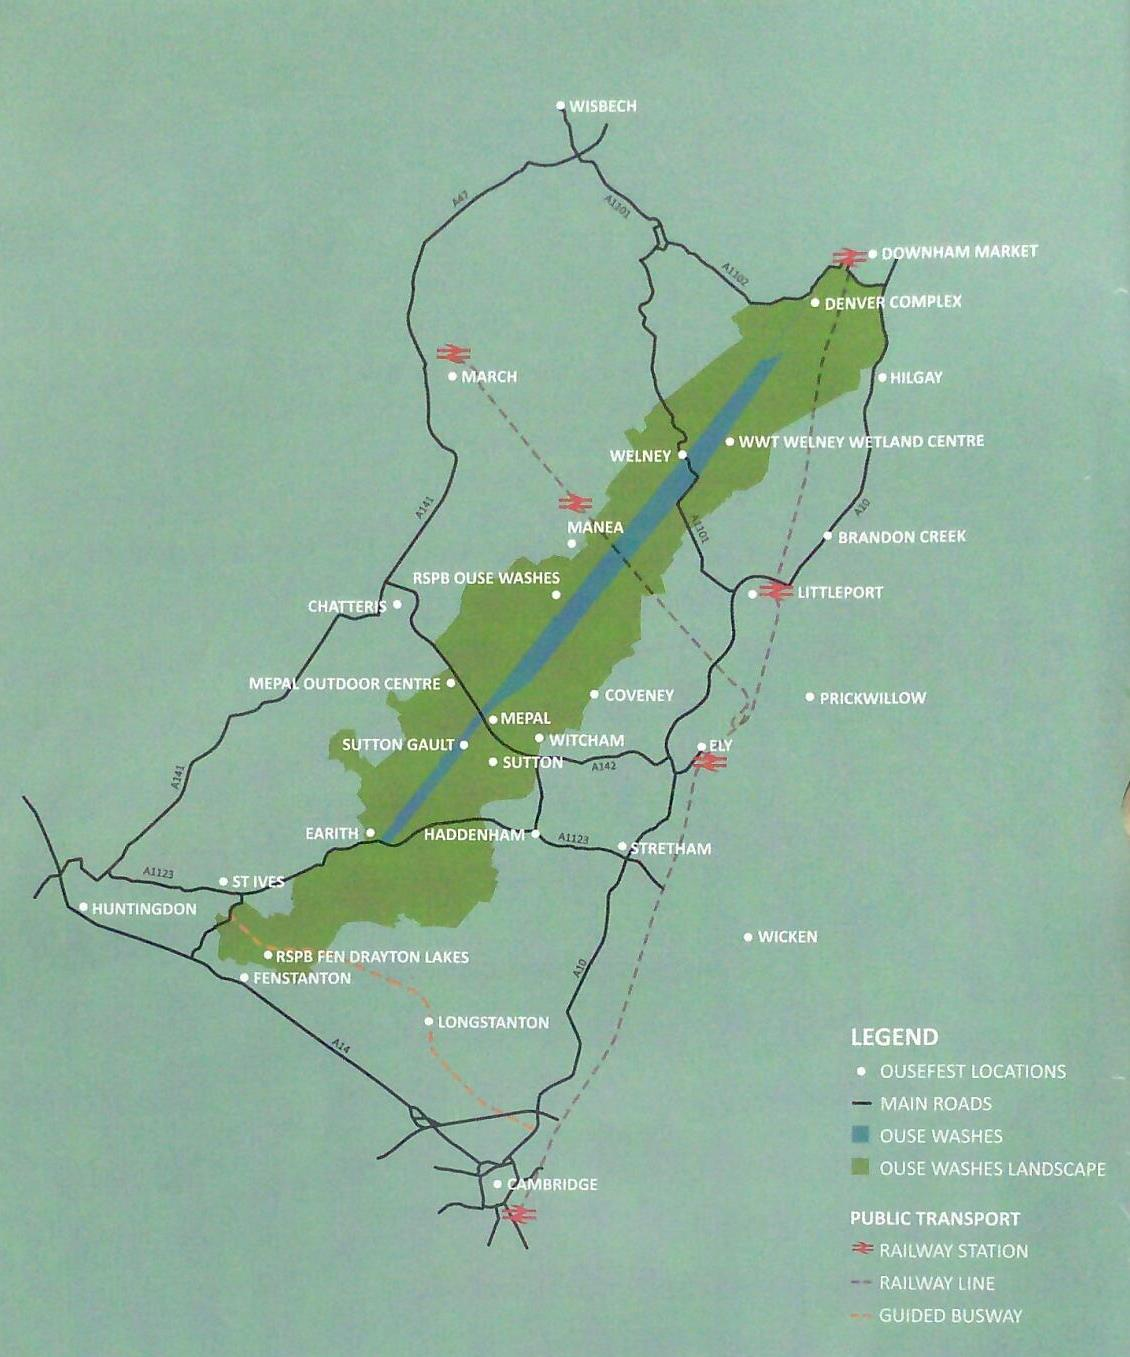 Ouse washes map with stations